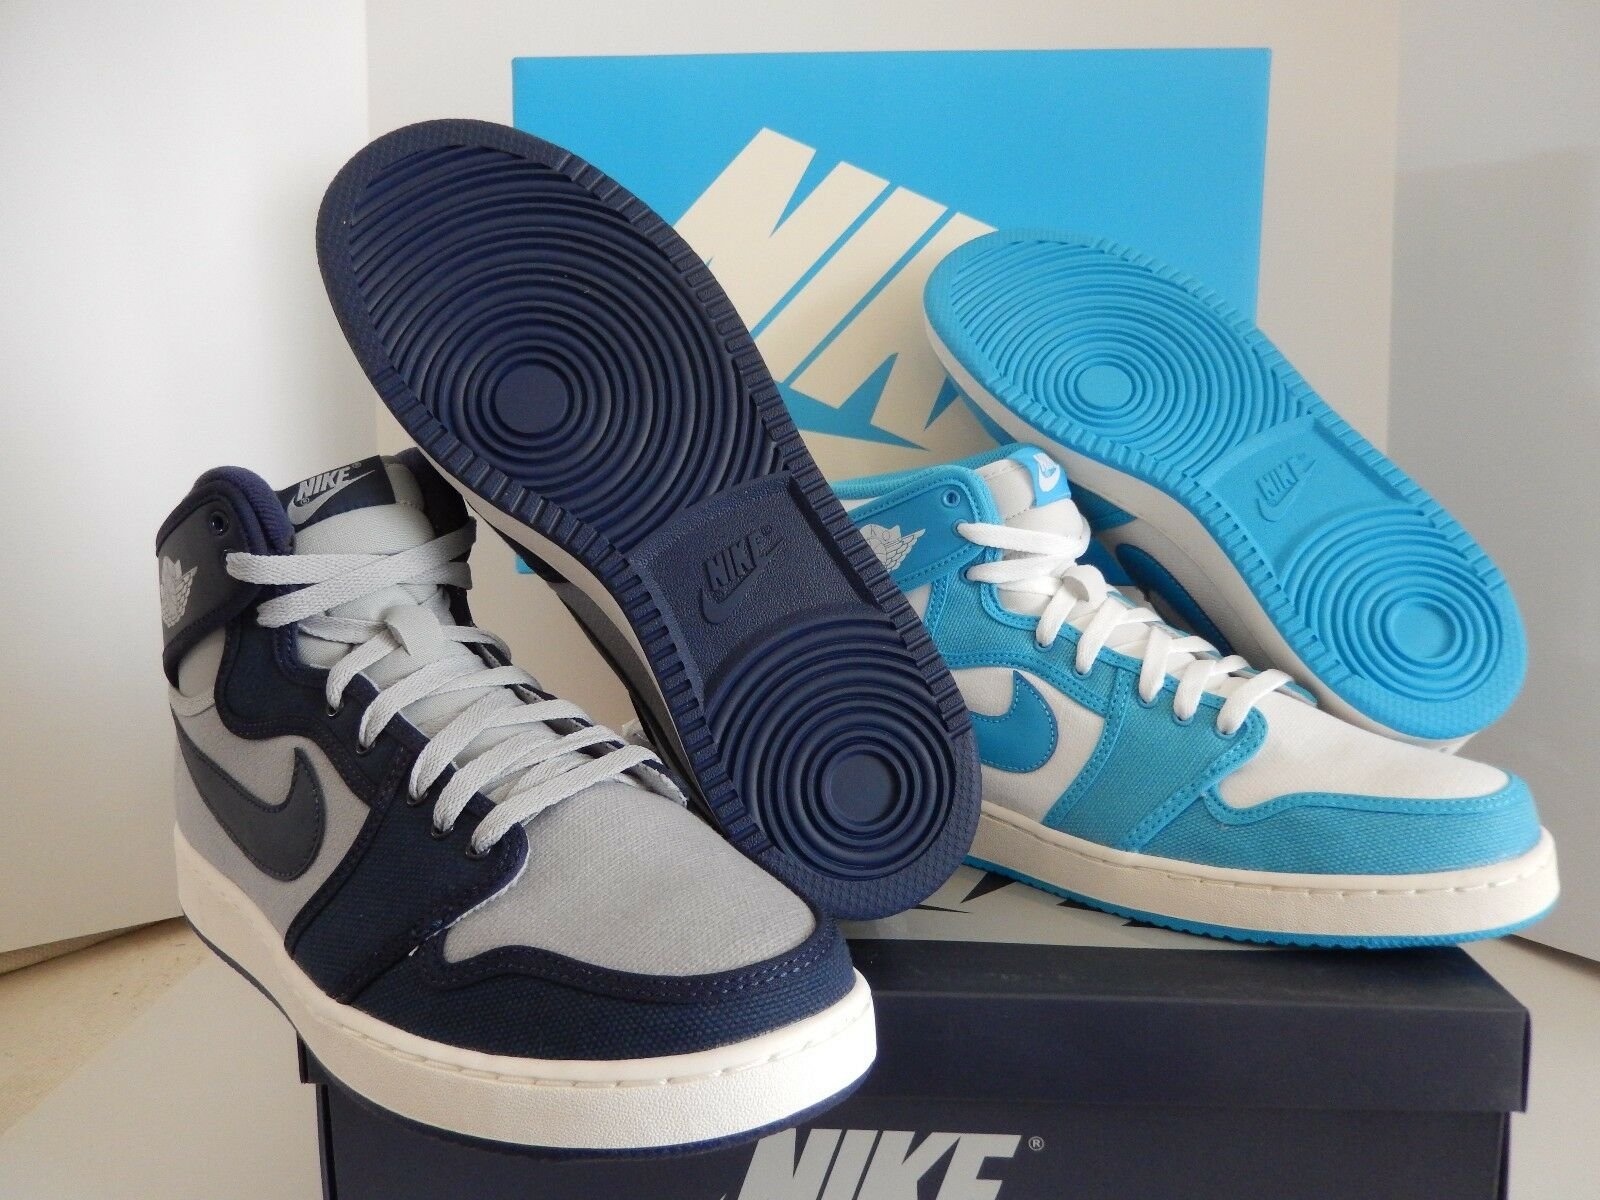 NIKE AIR JORDAN AJ1 KO HIGH OG RIVALRY PACK UNC/GEORGETOWN Price reduction The latest discount shoes for men and women